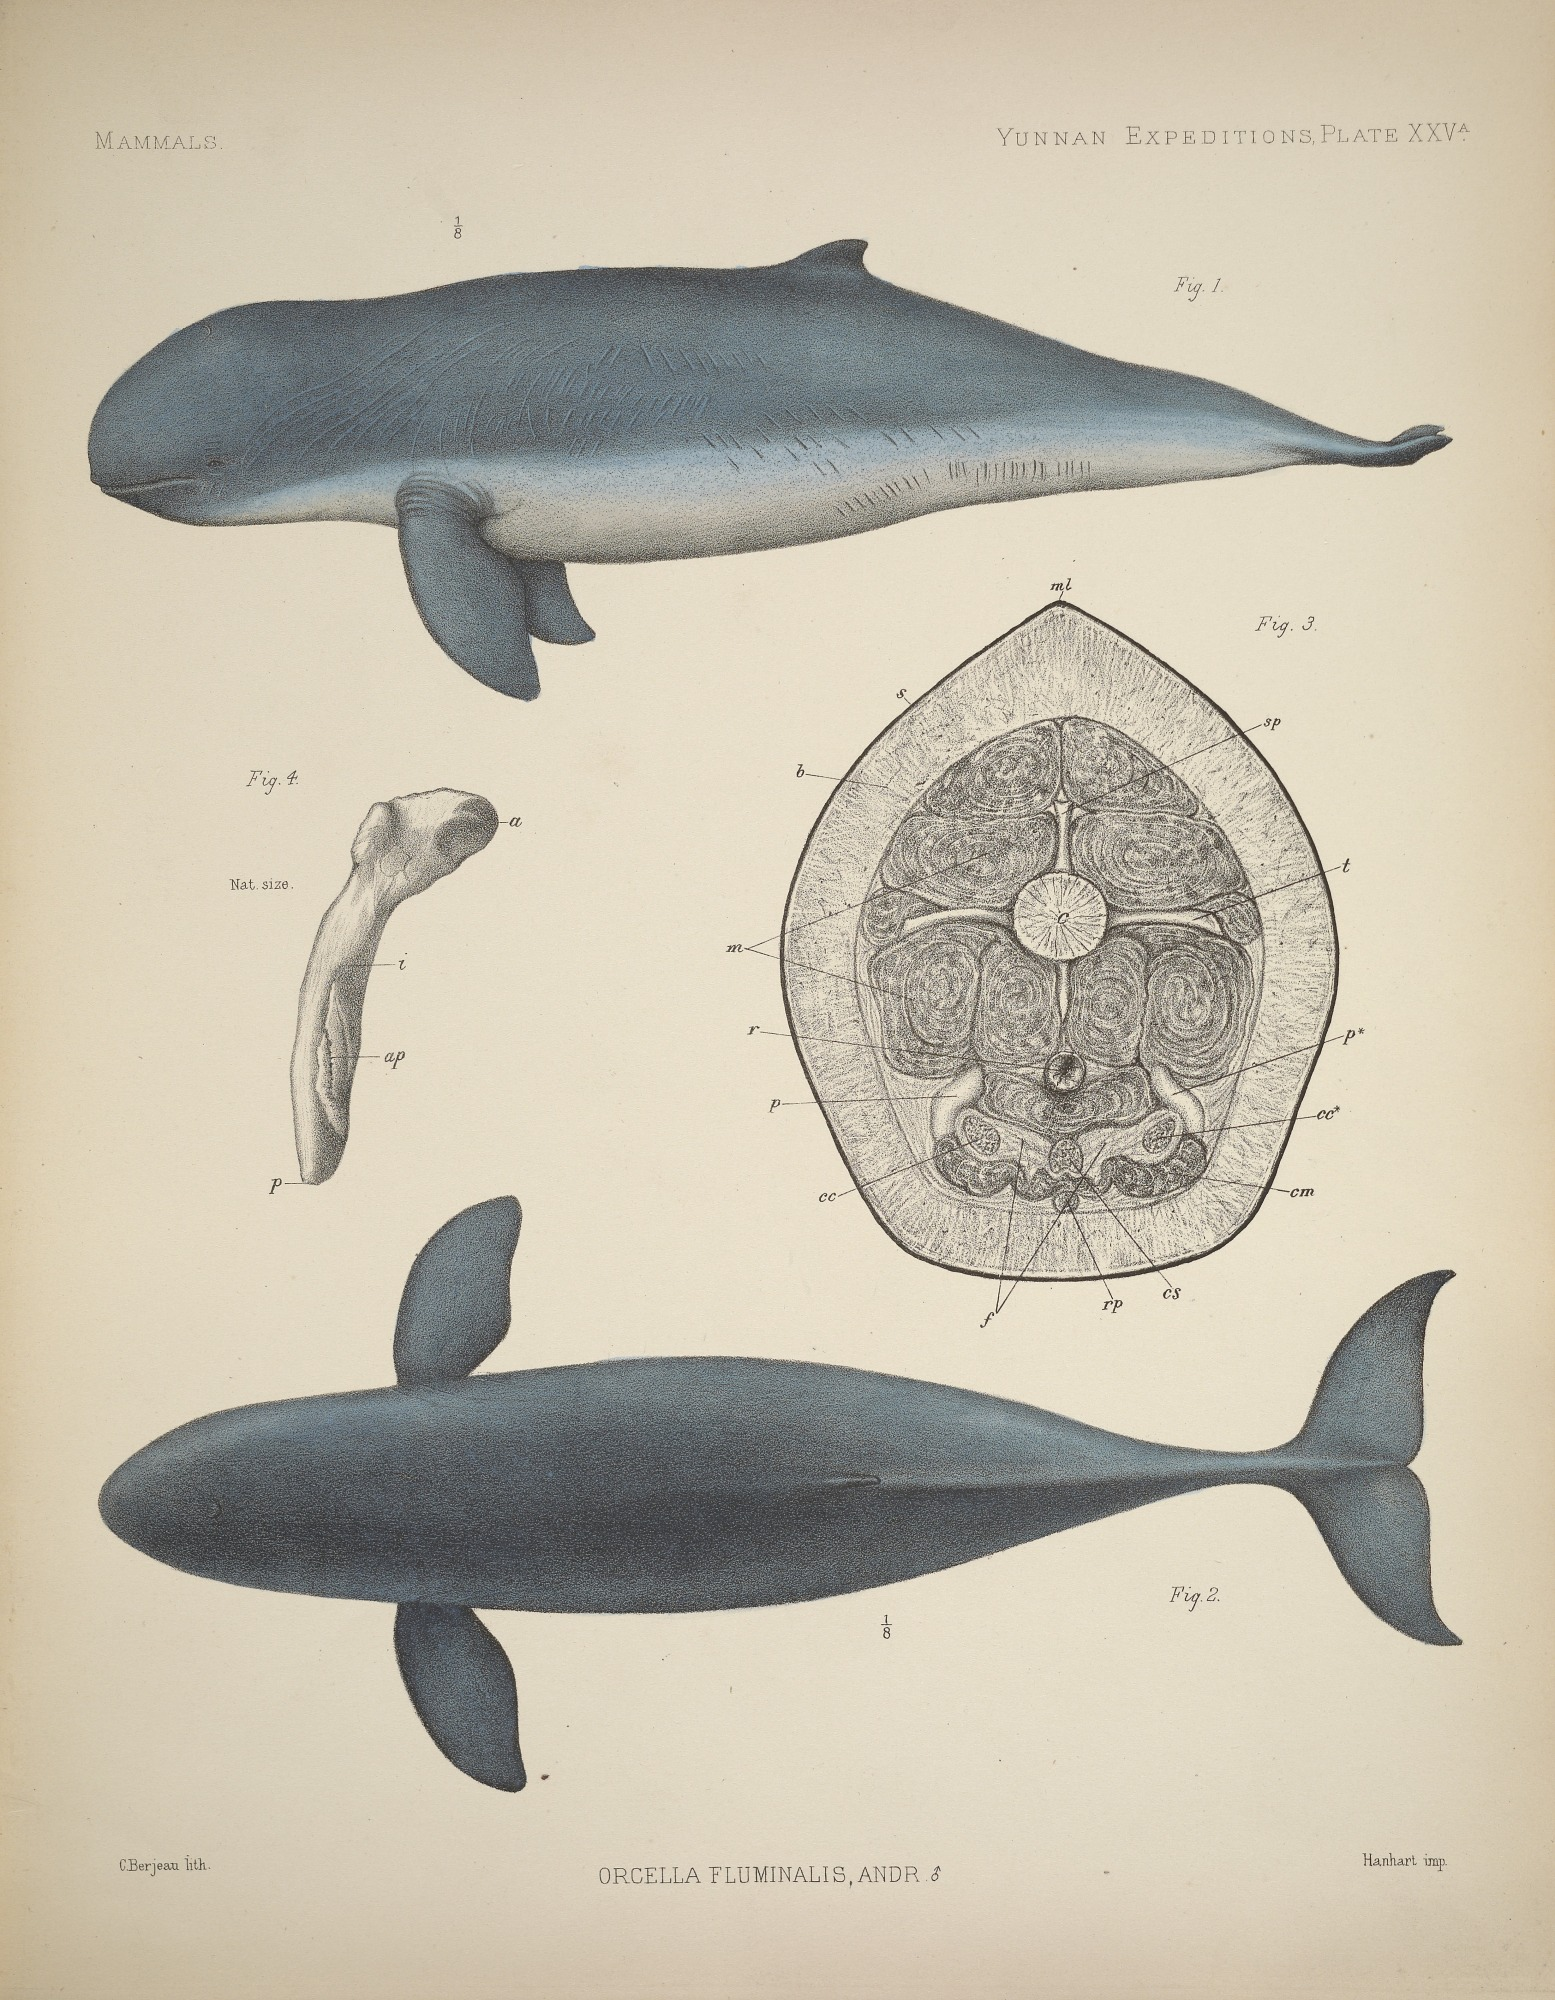 Plate depicting male snubfin dolphin anatomy